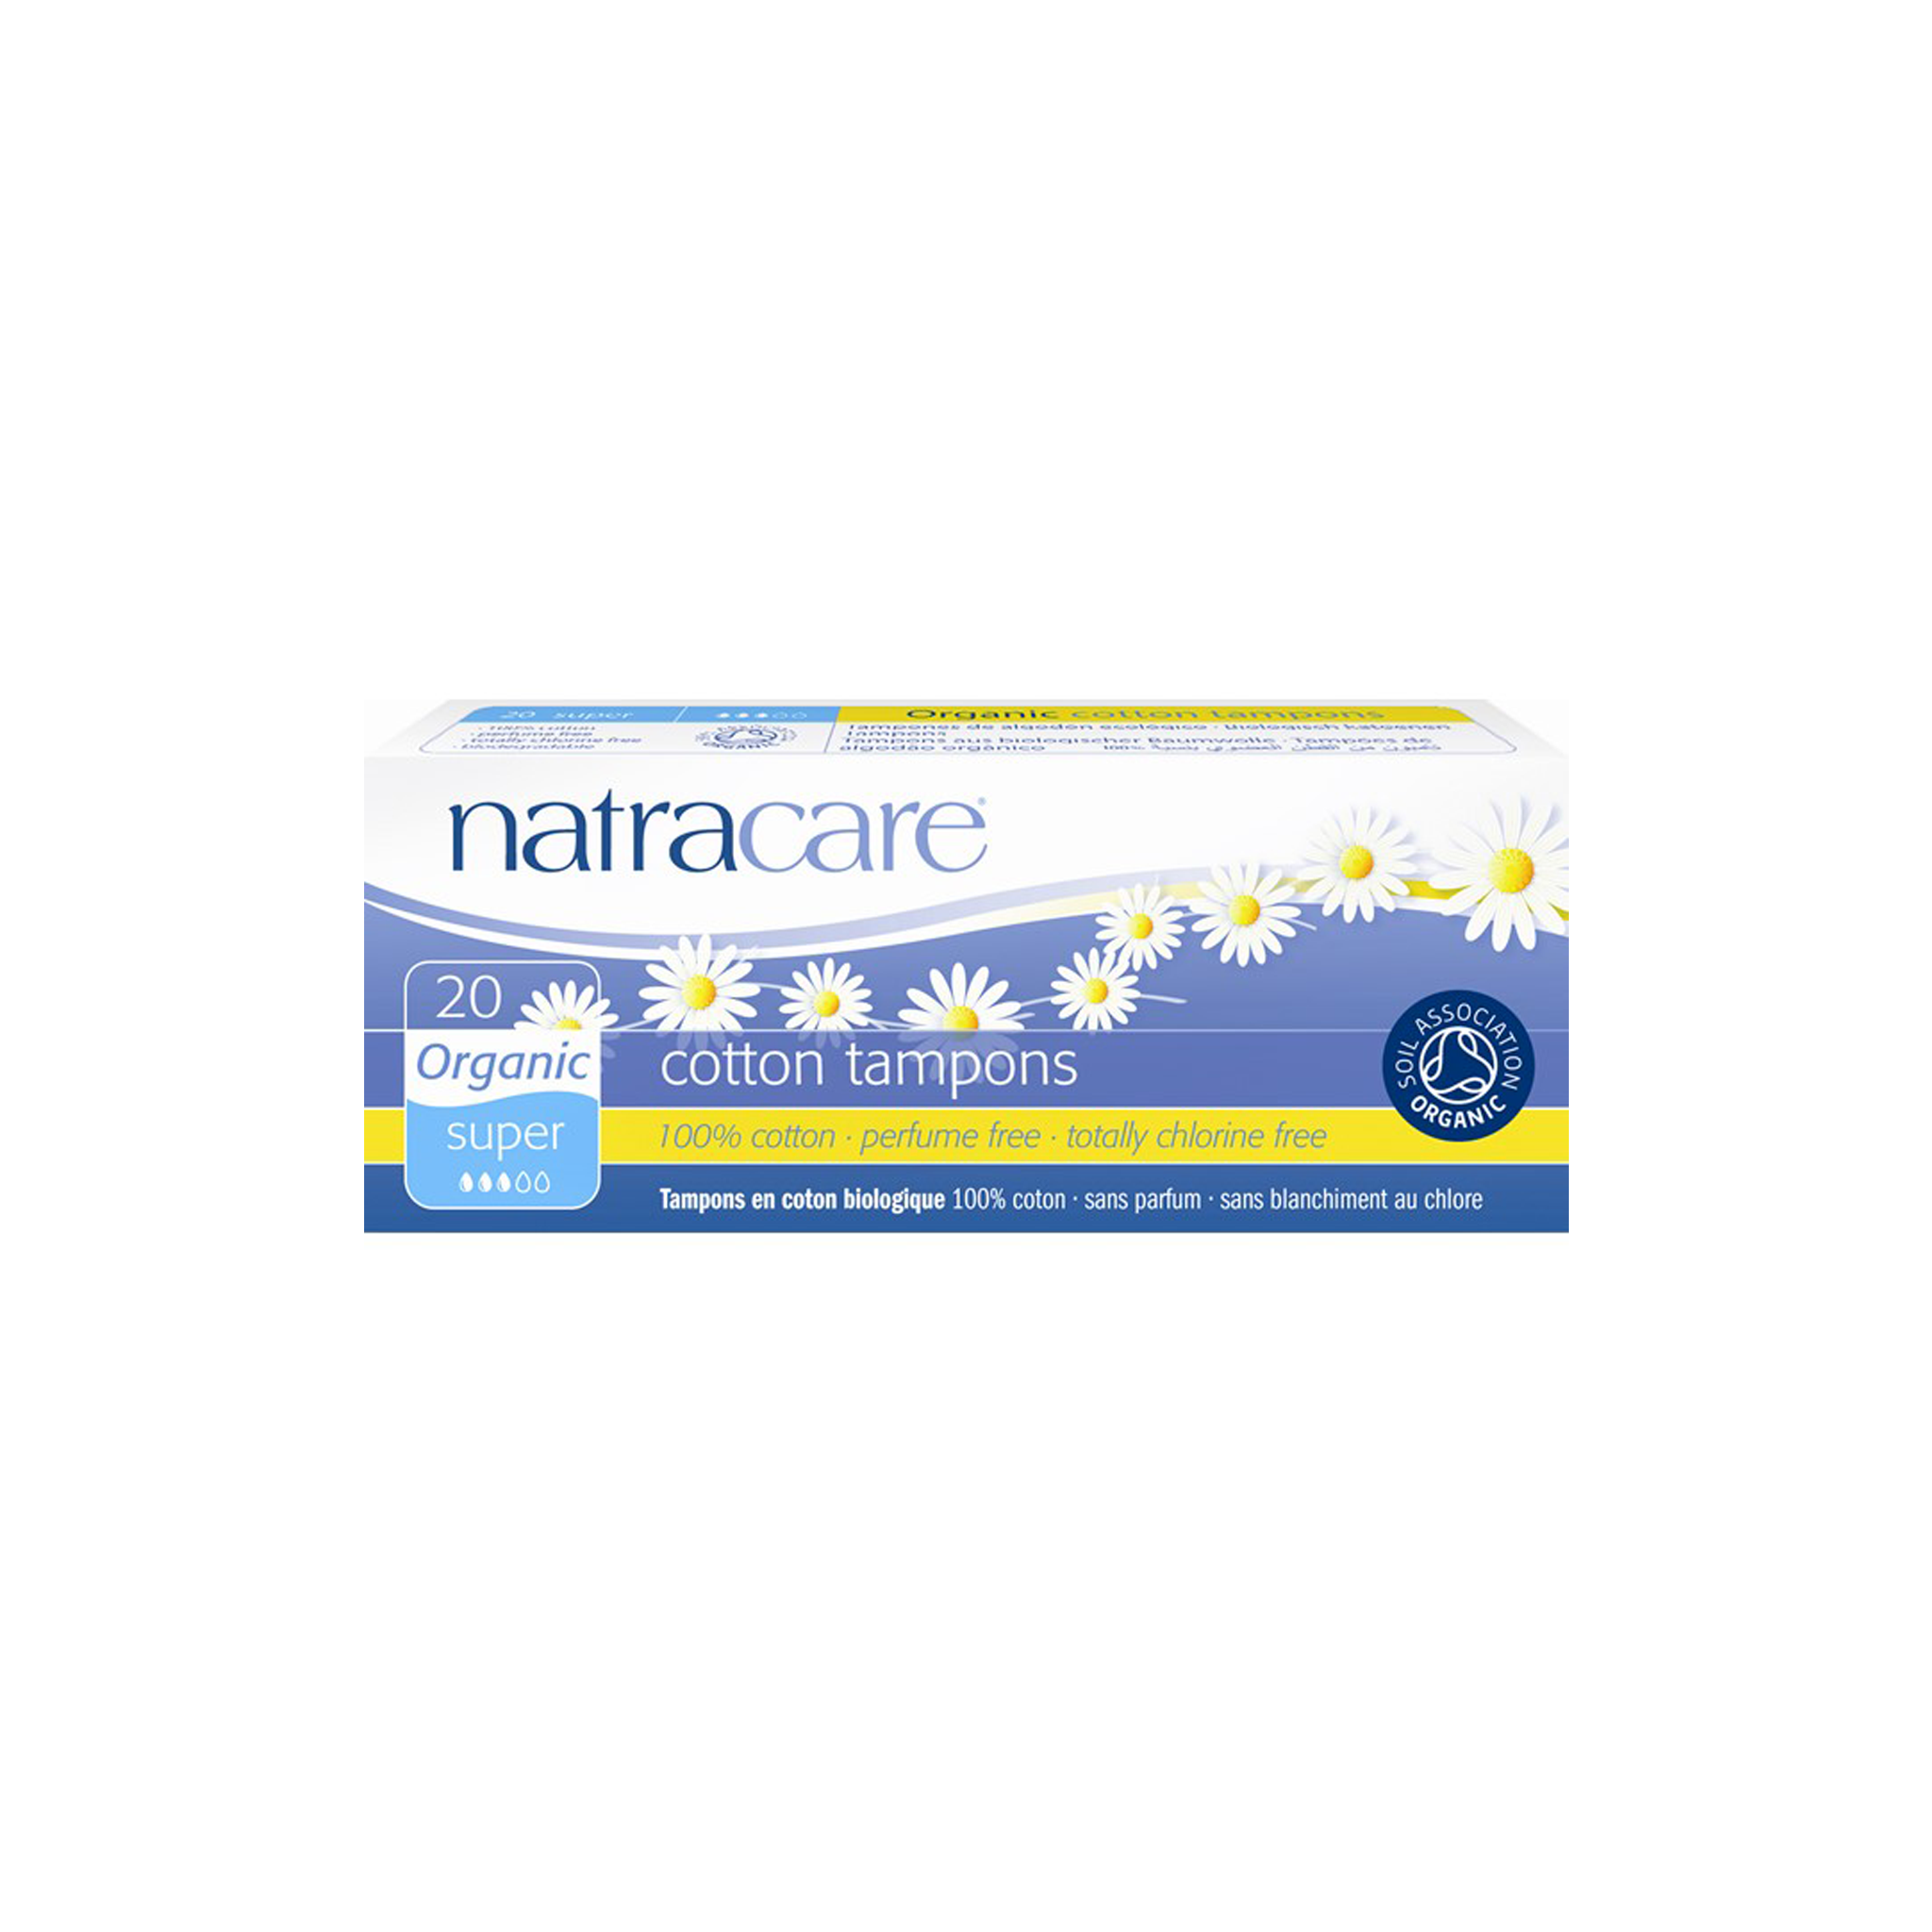 Natracare 100% Organic Cotton Tampons Super